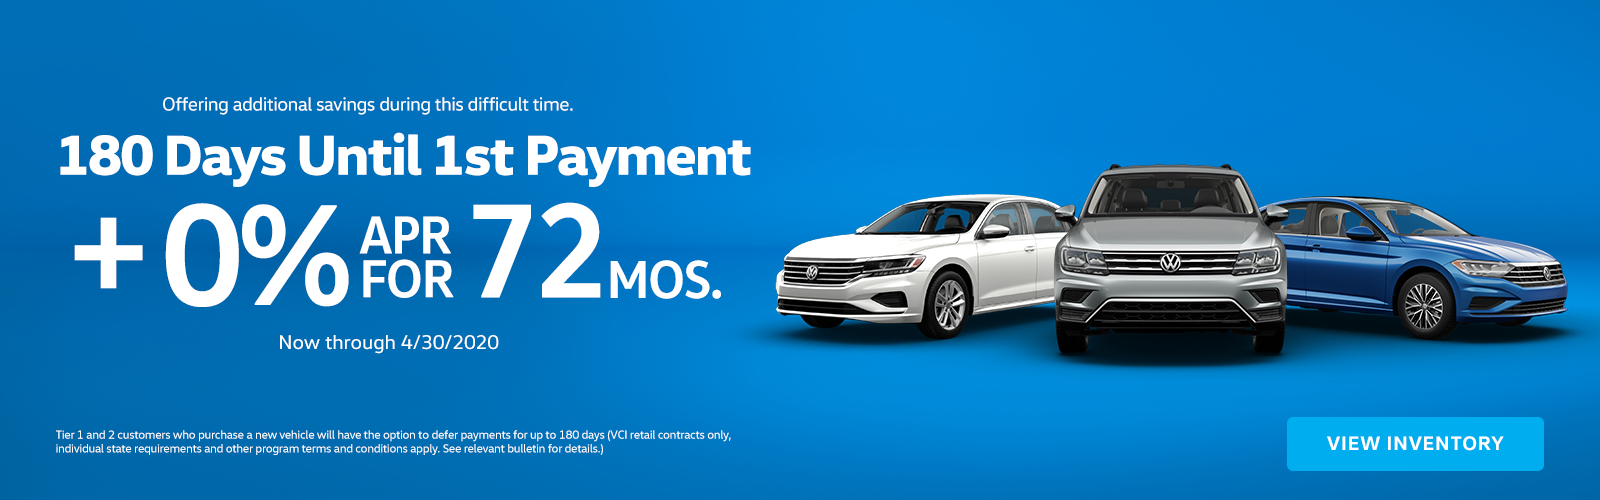 No Payments for 180 Days and 0% APR for 72 Months